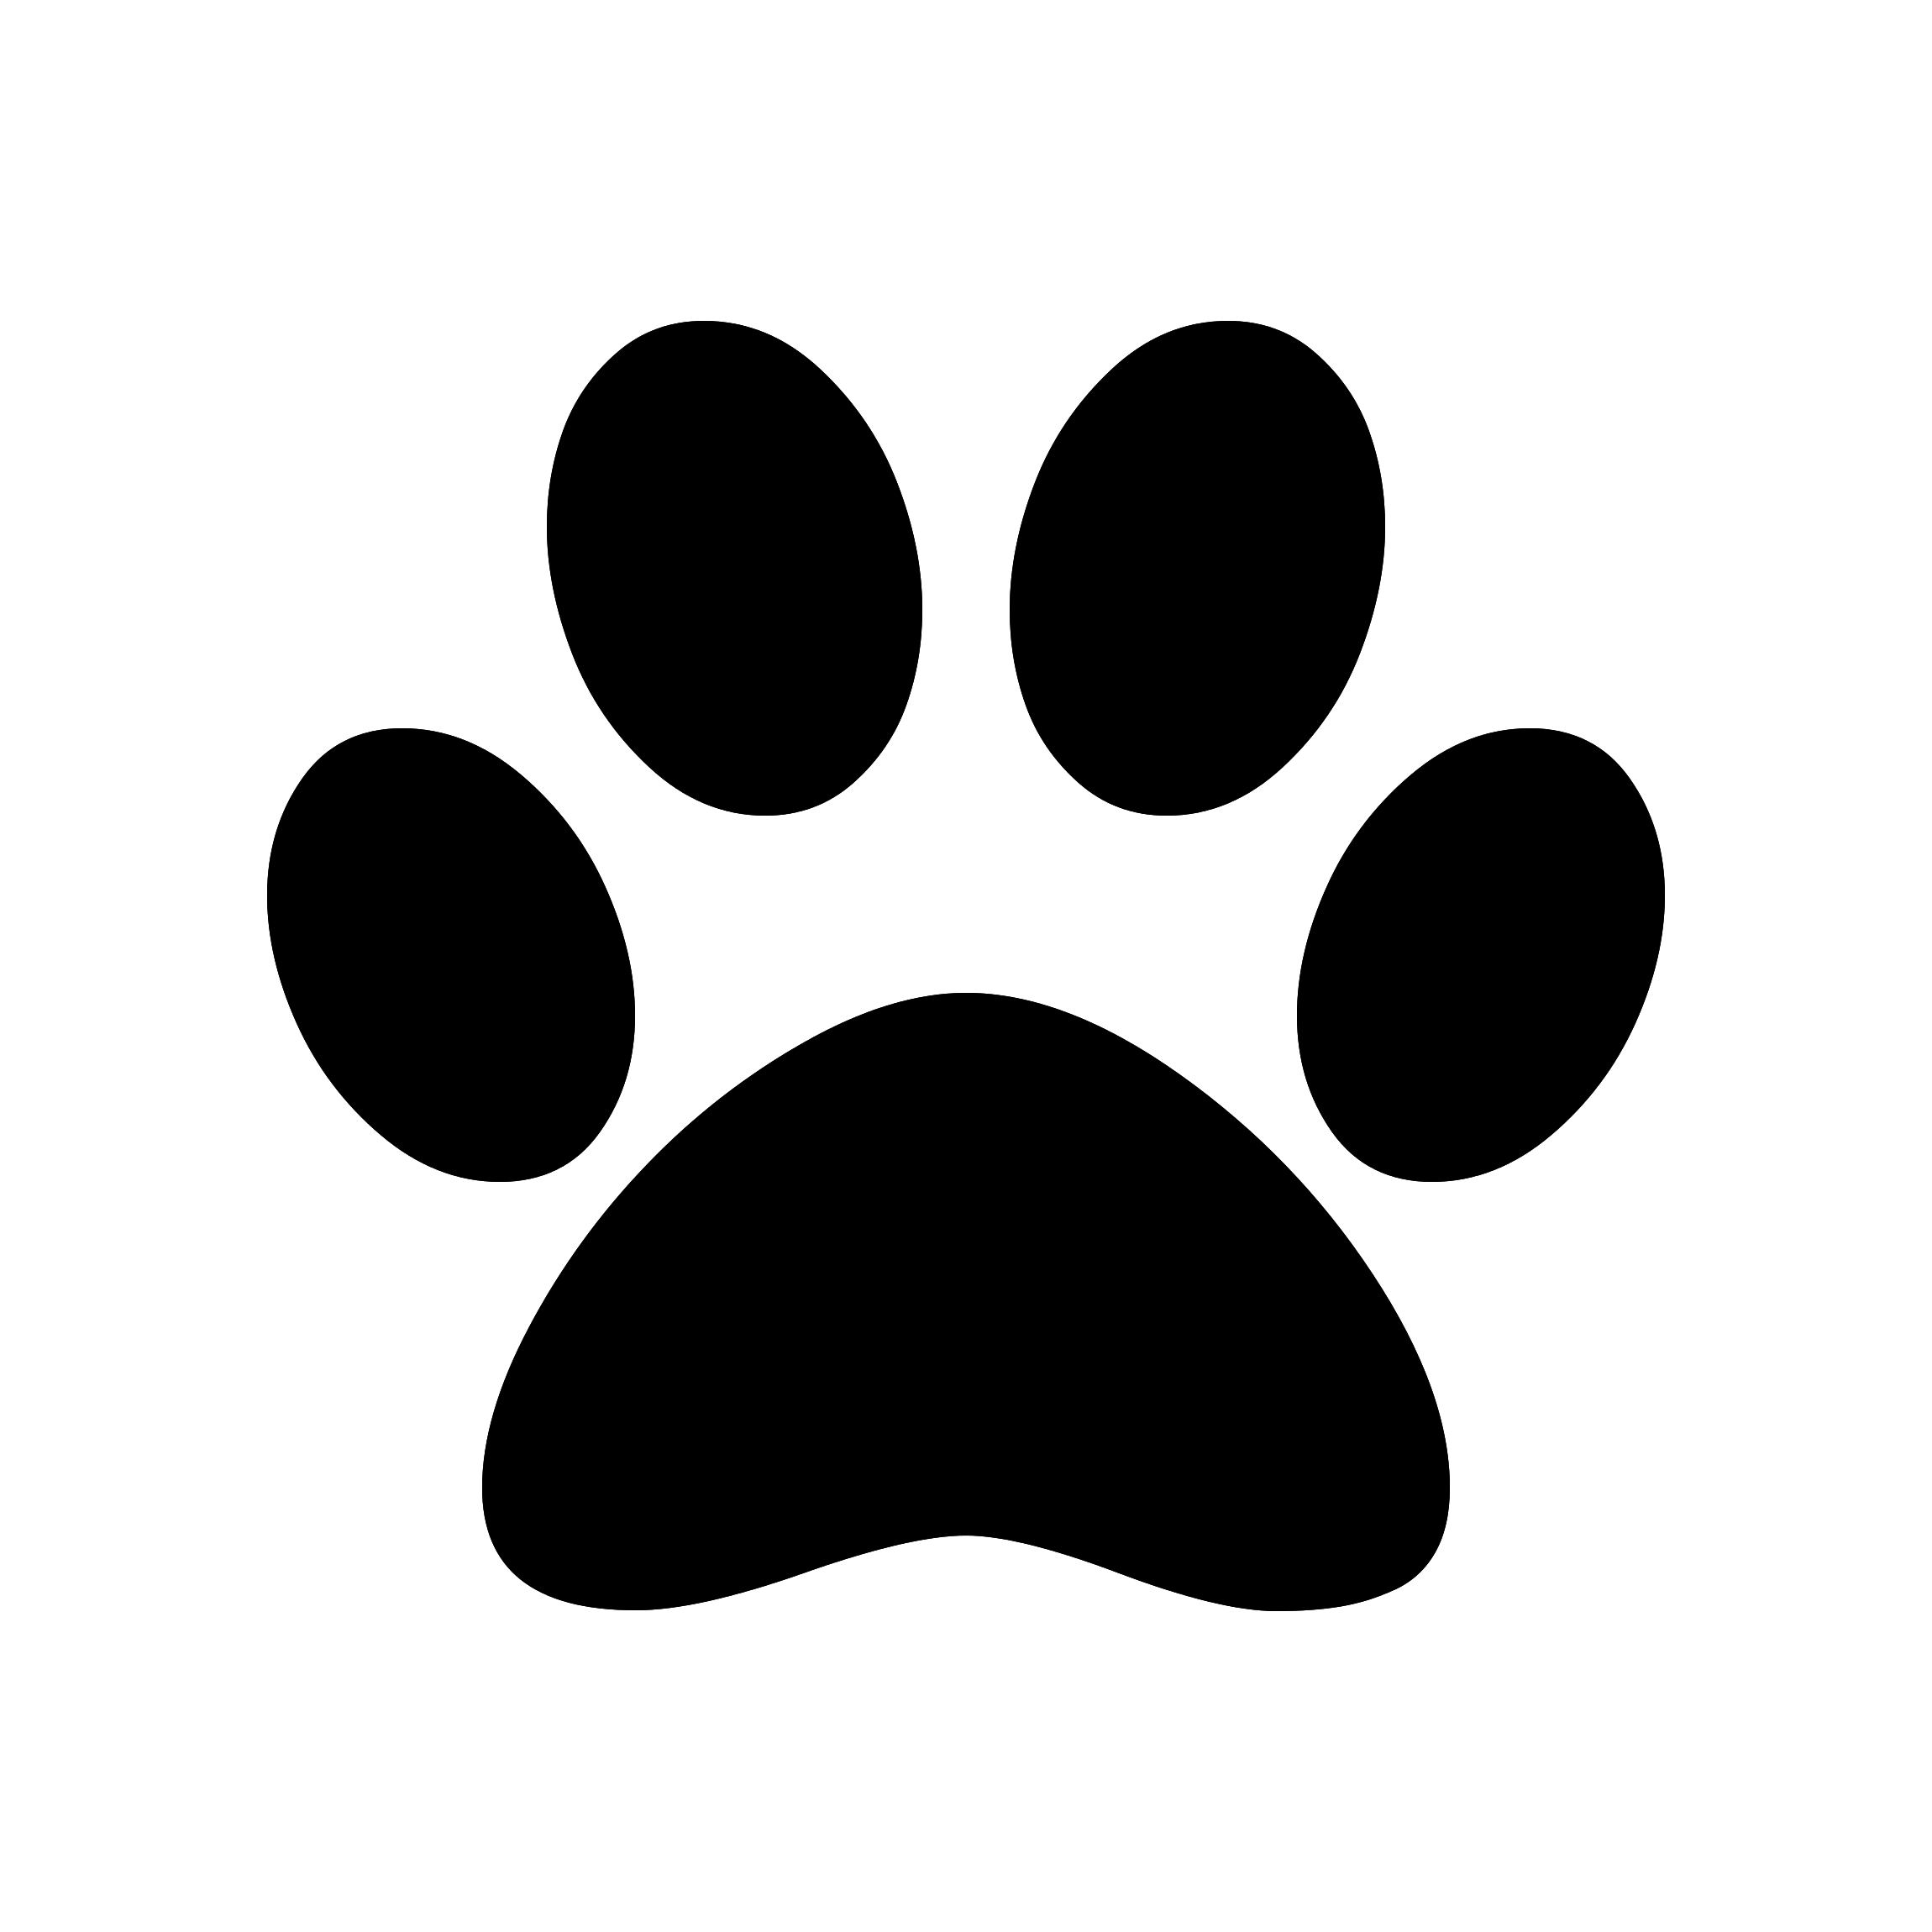 data/images/paw.png